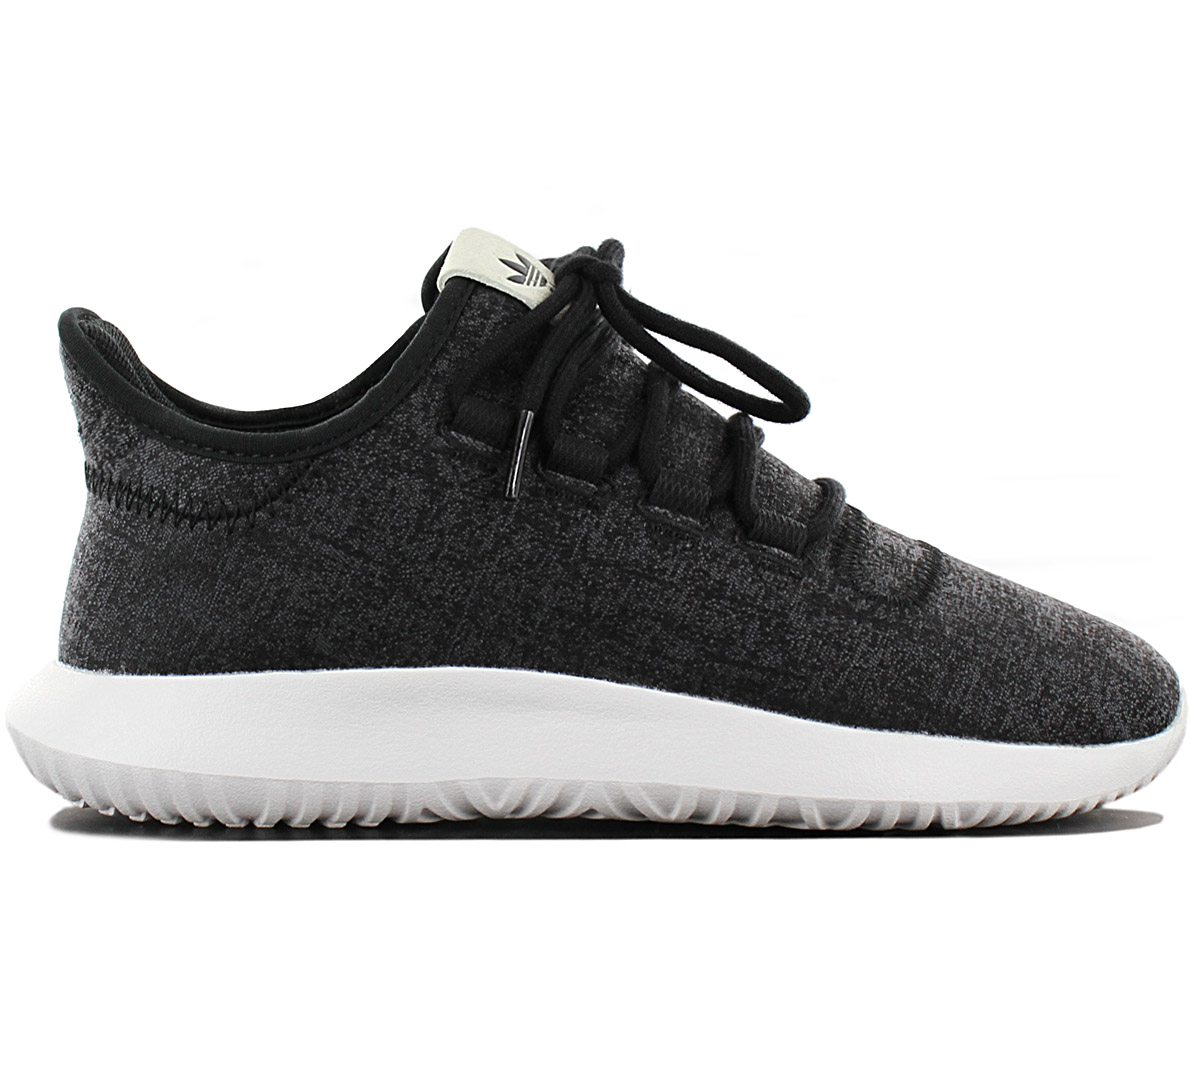 Details about Adidas Originals Tubular Shadow W Women's Sneaker BY2121 Black Shoes Sneakers